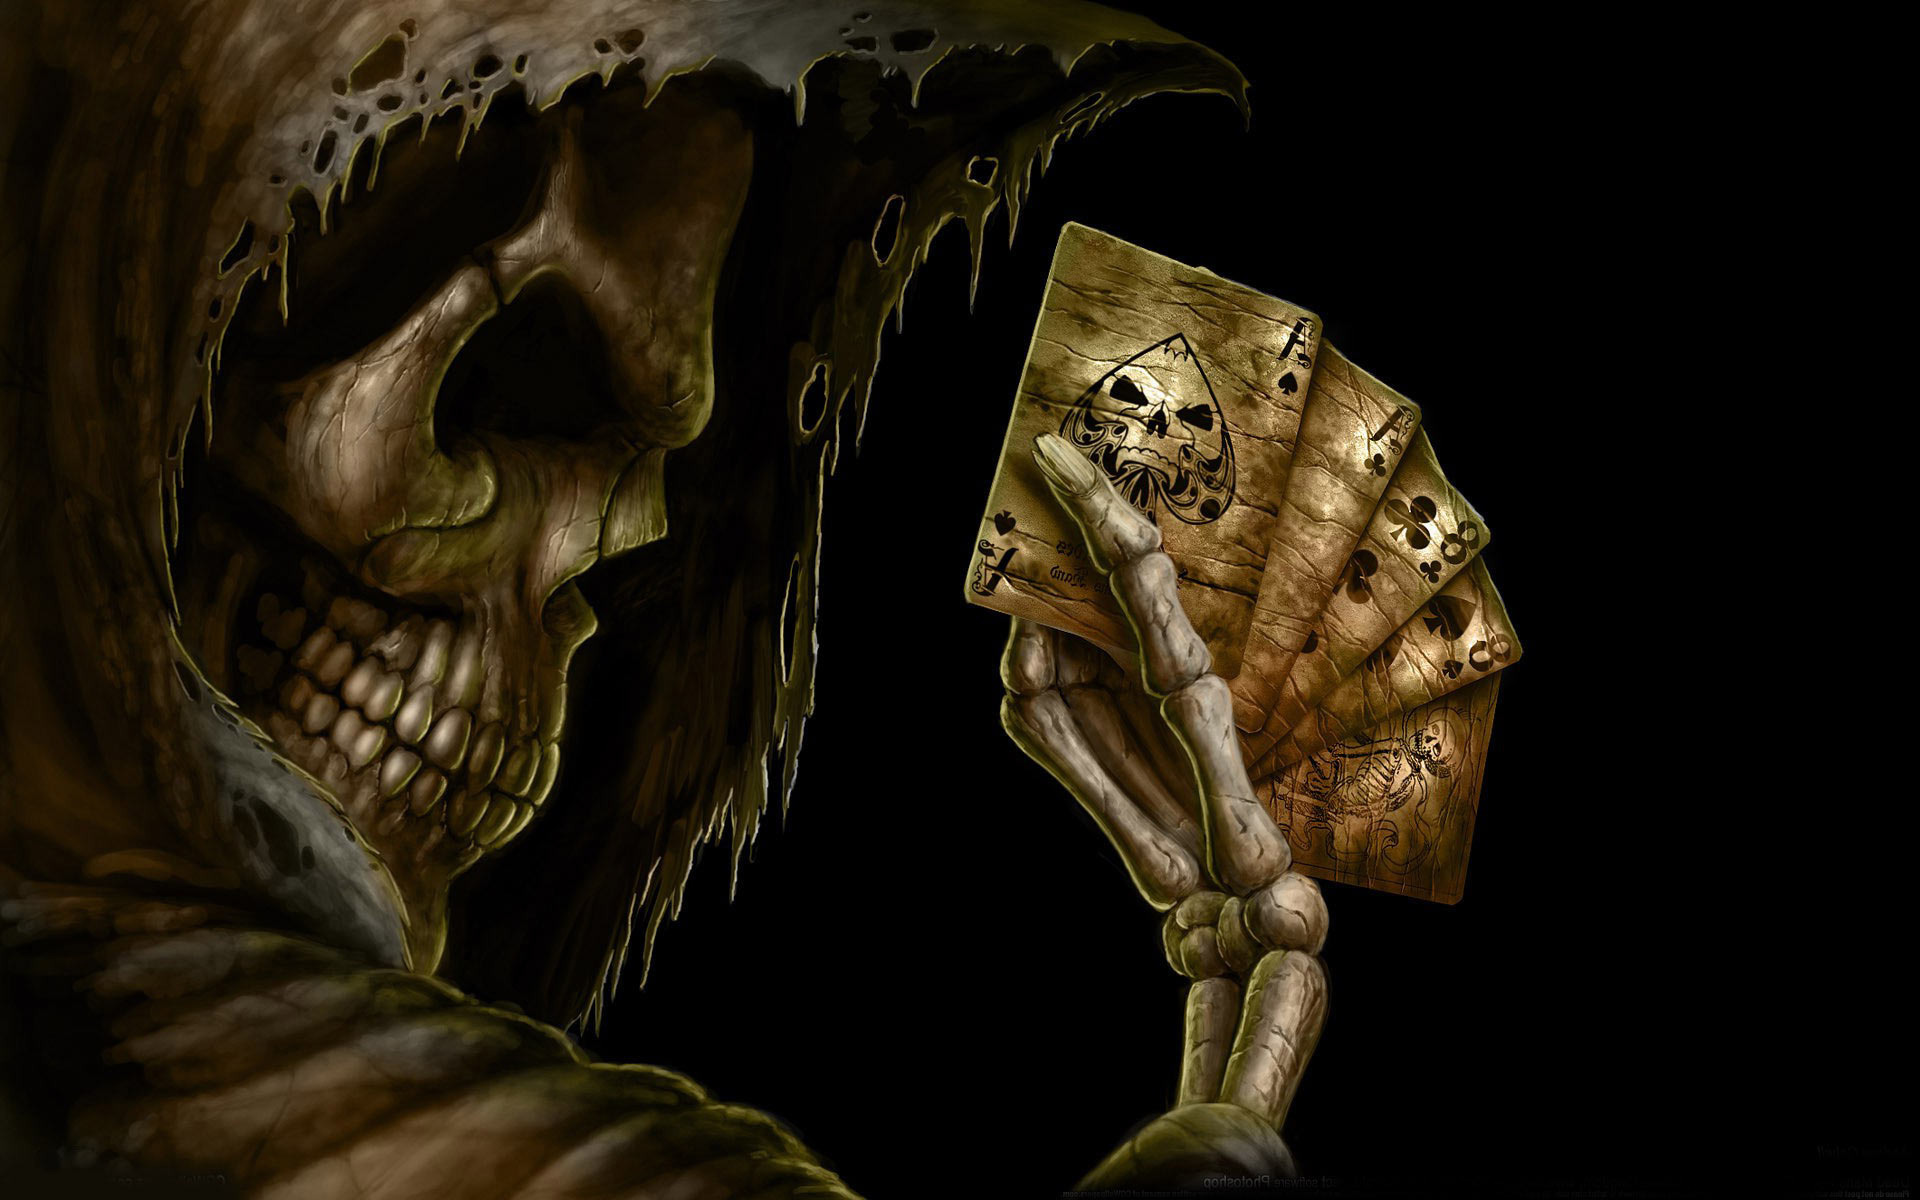 Horror Animated Wallpaper Free Download For Pc: Playing Cards Wallpaper 1920x1080